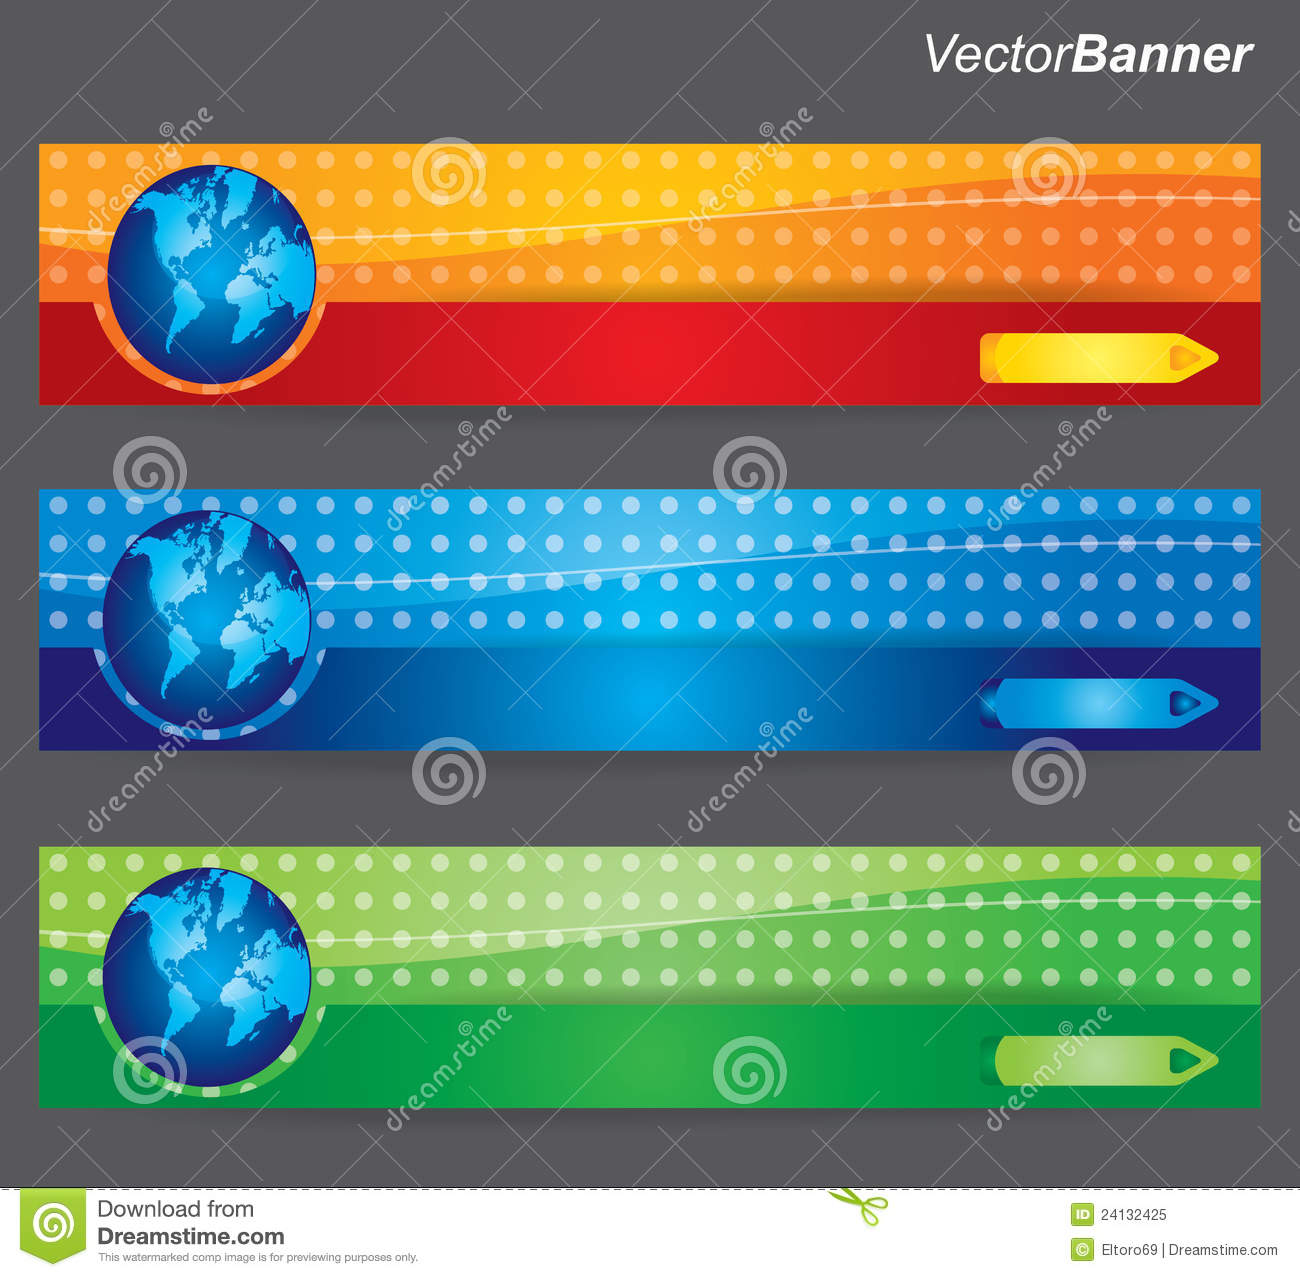 Free banner images for website - Royalty Free Stock Photo